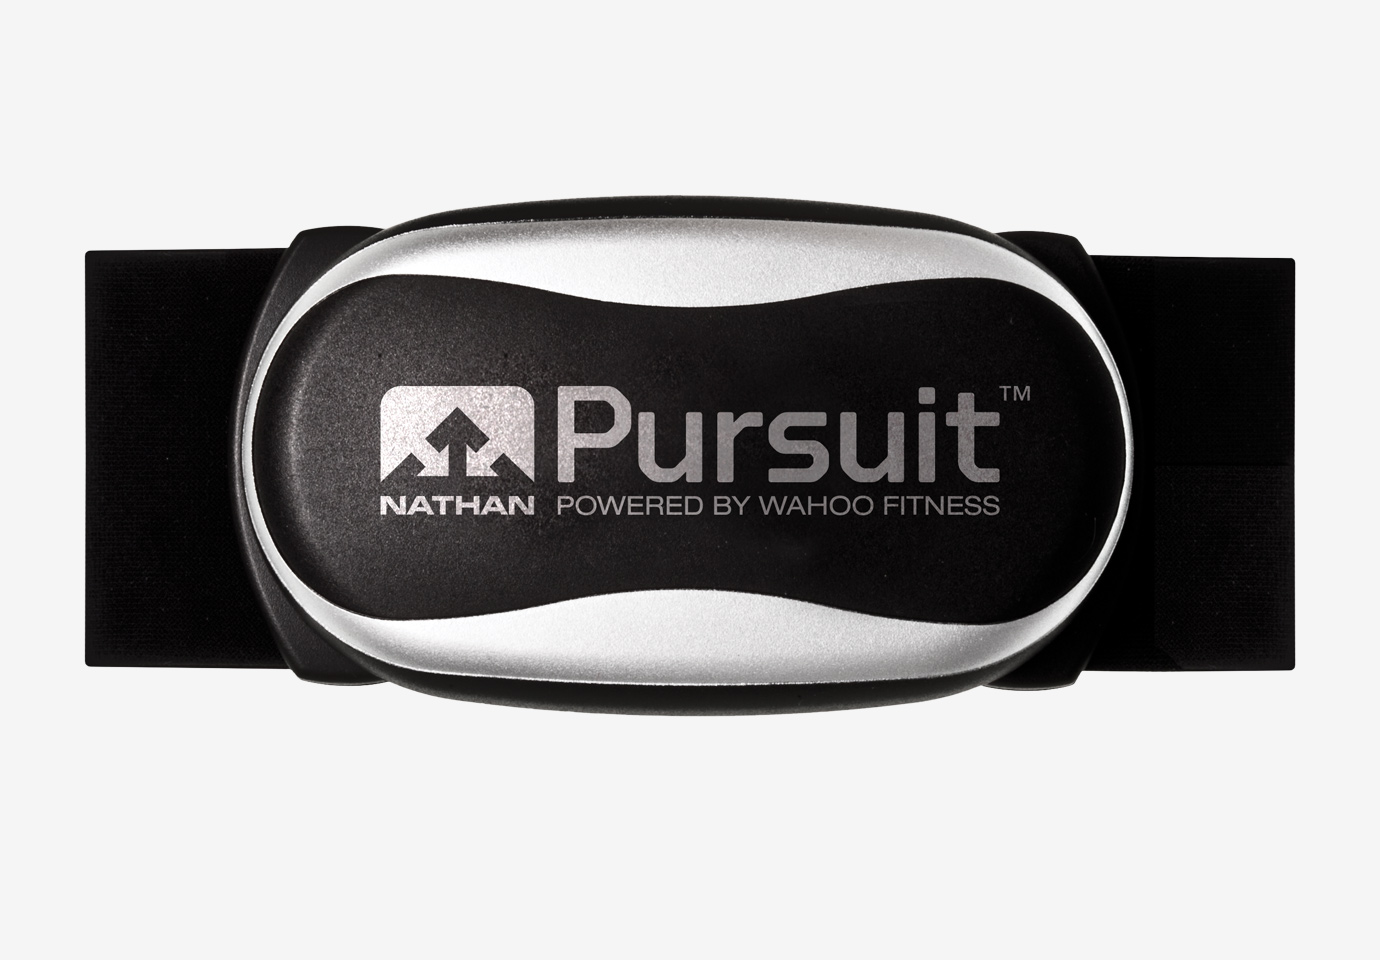 Nathan Sports Pursuit armband fitness monitor.